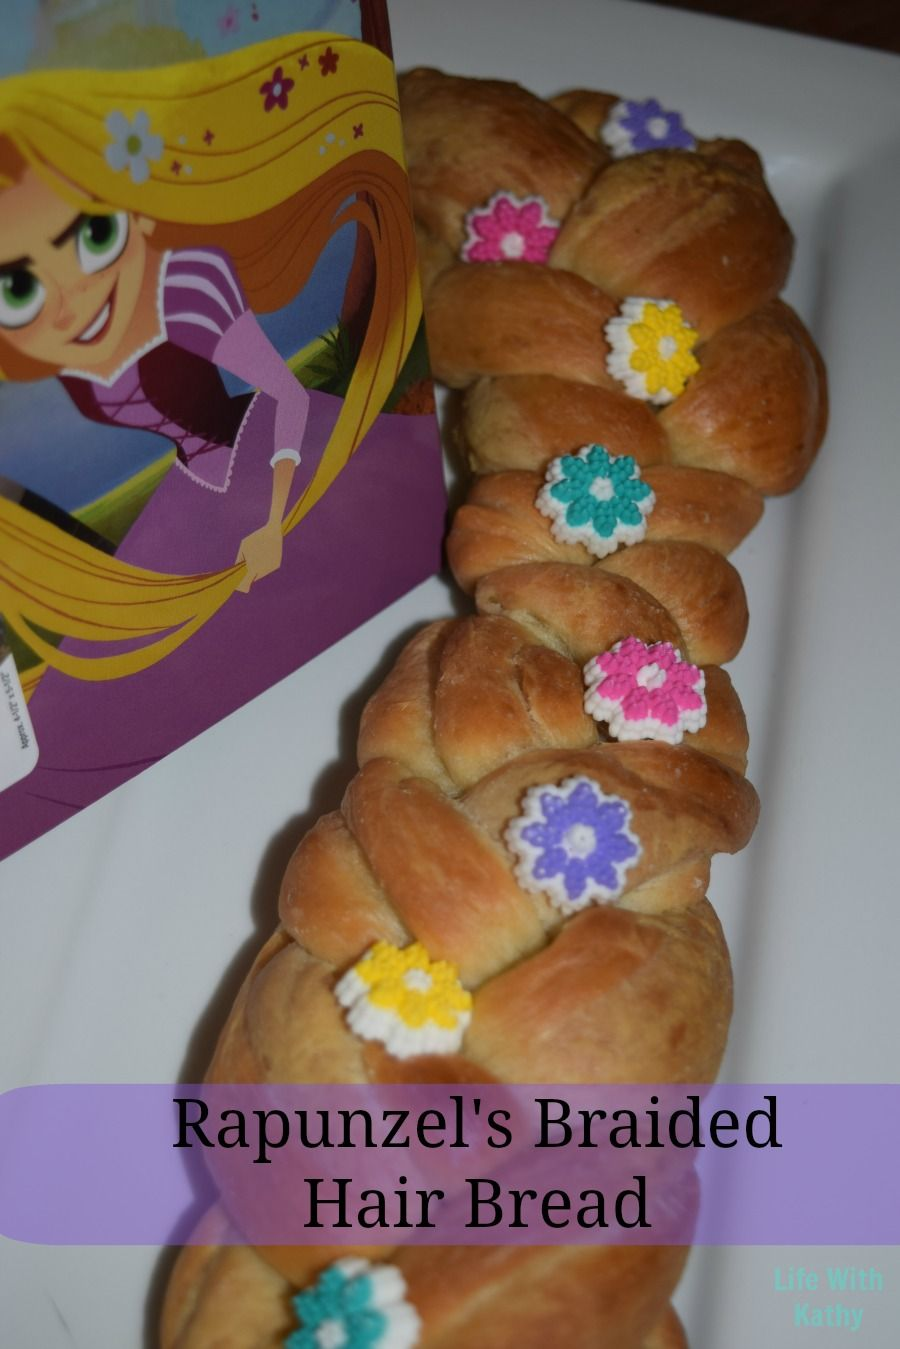 Rapunzelus Braided Hair Bread inspired by Tangled Before Ever After